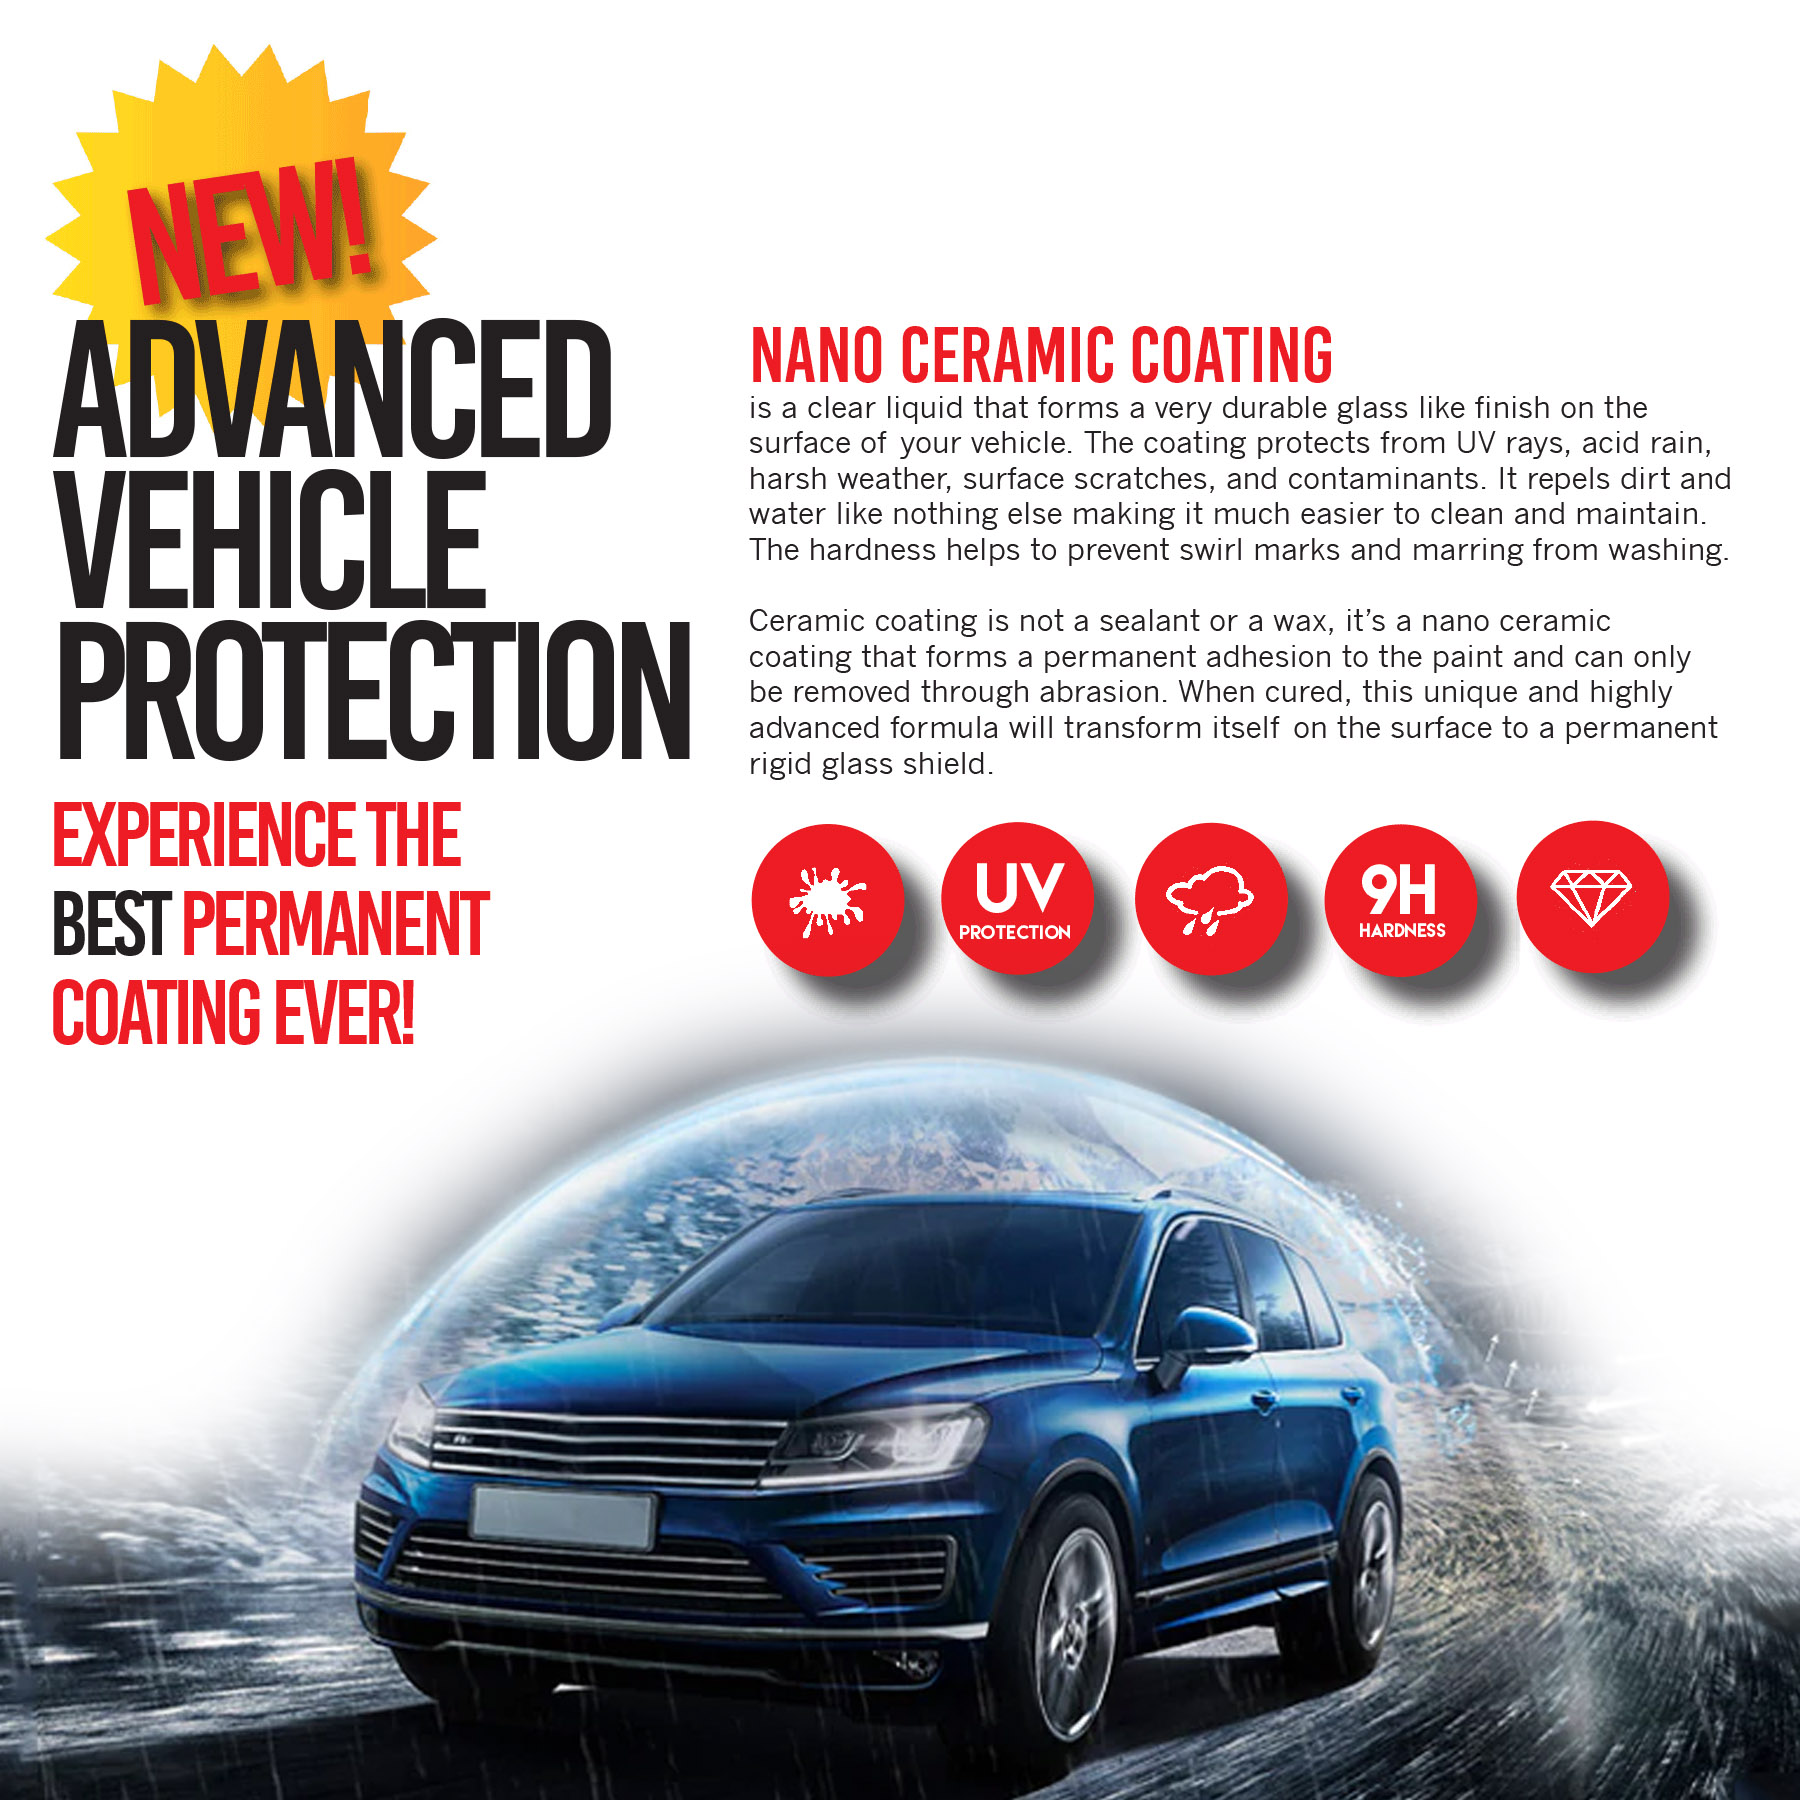 A1 Car Cleaning & Auto Accessories Detailing Experts for over 30